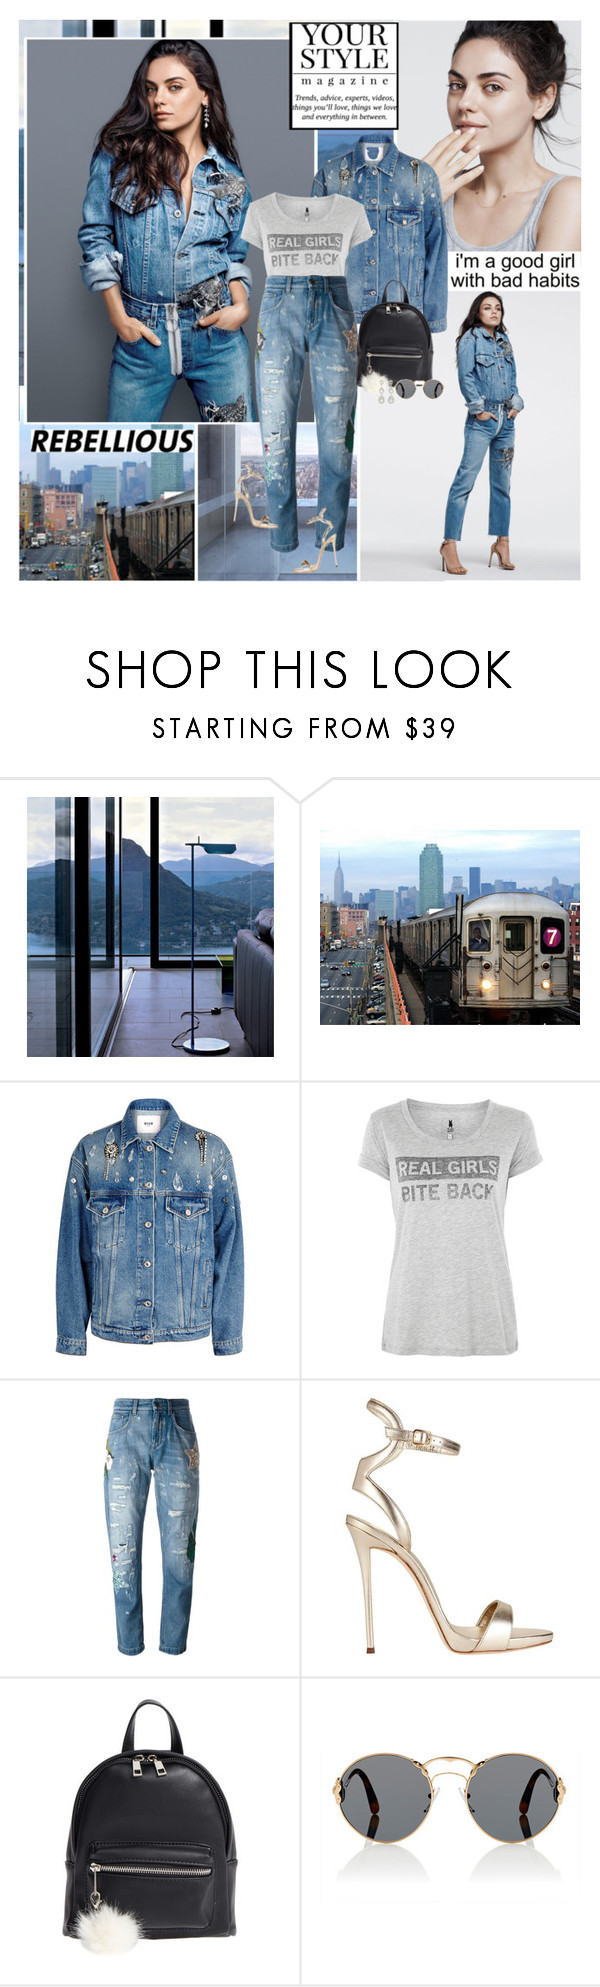 """Mila Kunis : )"" by thisiswhoireallyam7 ❤ liked on Polyvore featuring Flos, MSGM, Blake Seven, Dolce&Gabbana, Giuseppe Zanotti, BP., Prada, denim, milakunis and casualoutfit"